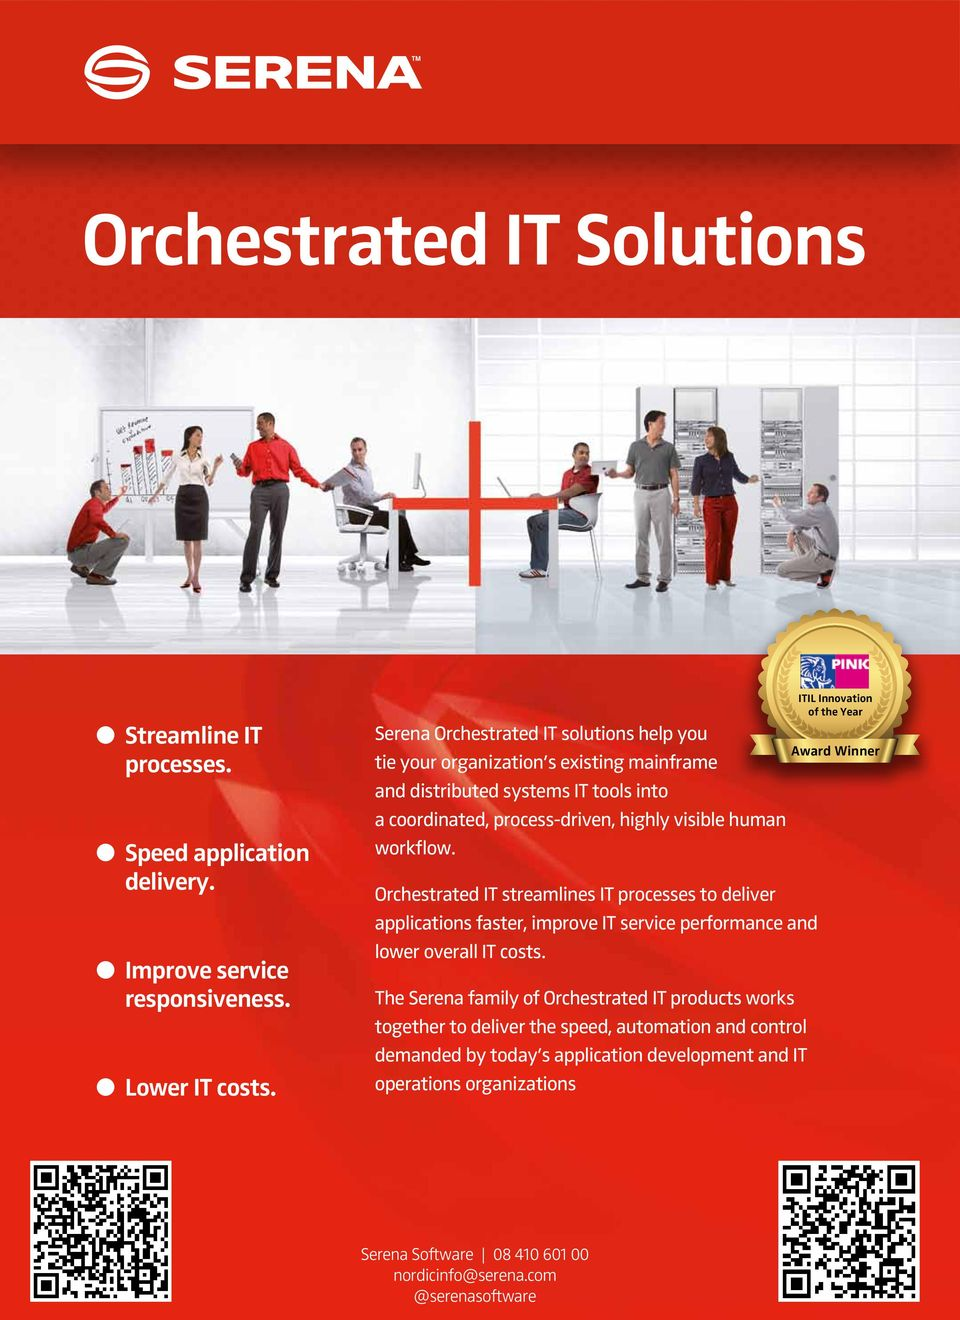 Orchestrated IT streamlines IT processes to deliver applications faster, improve IT service performance and lower overall IT costs.